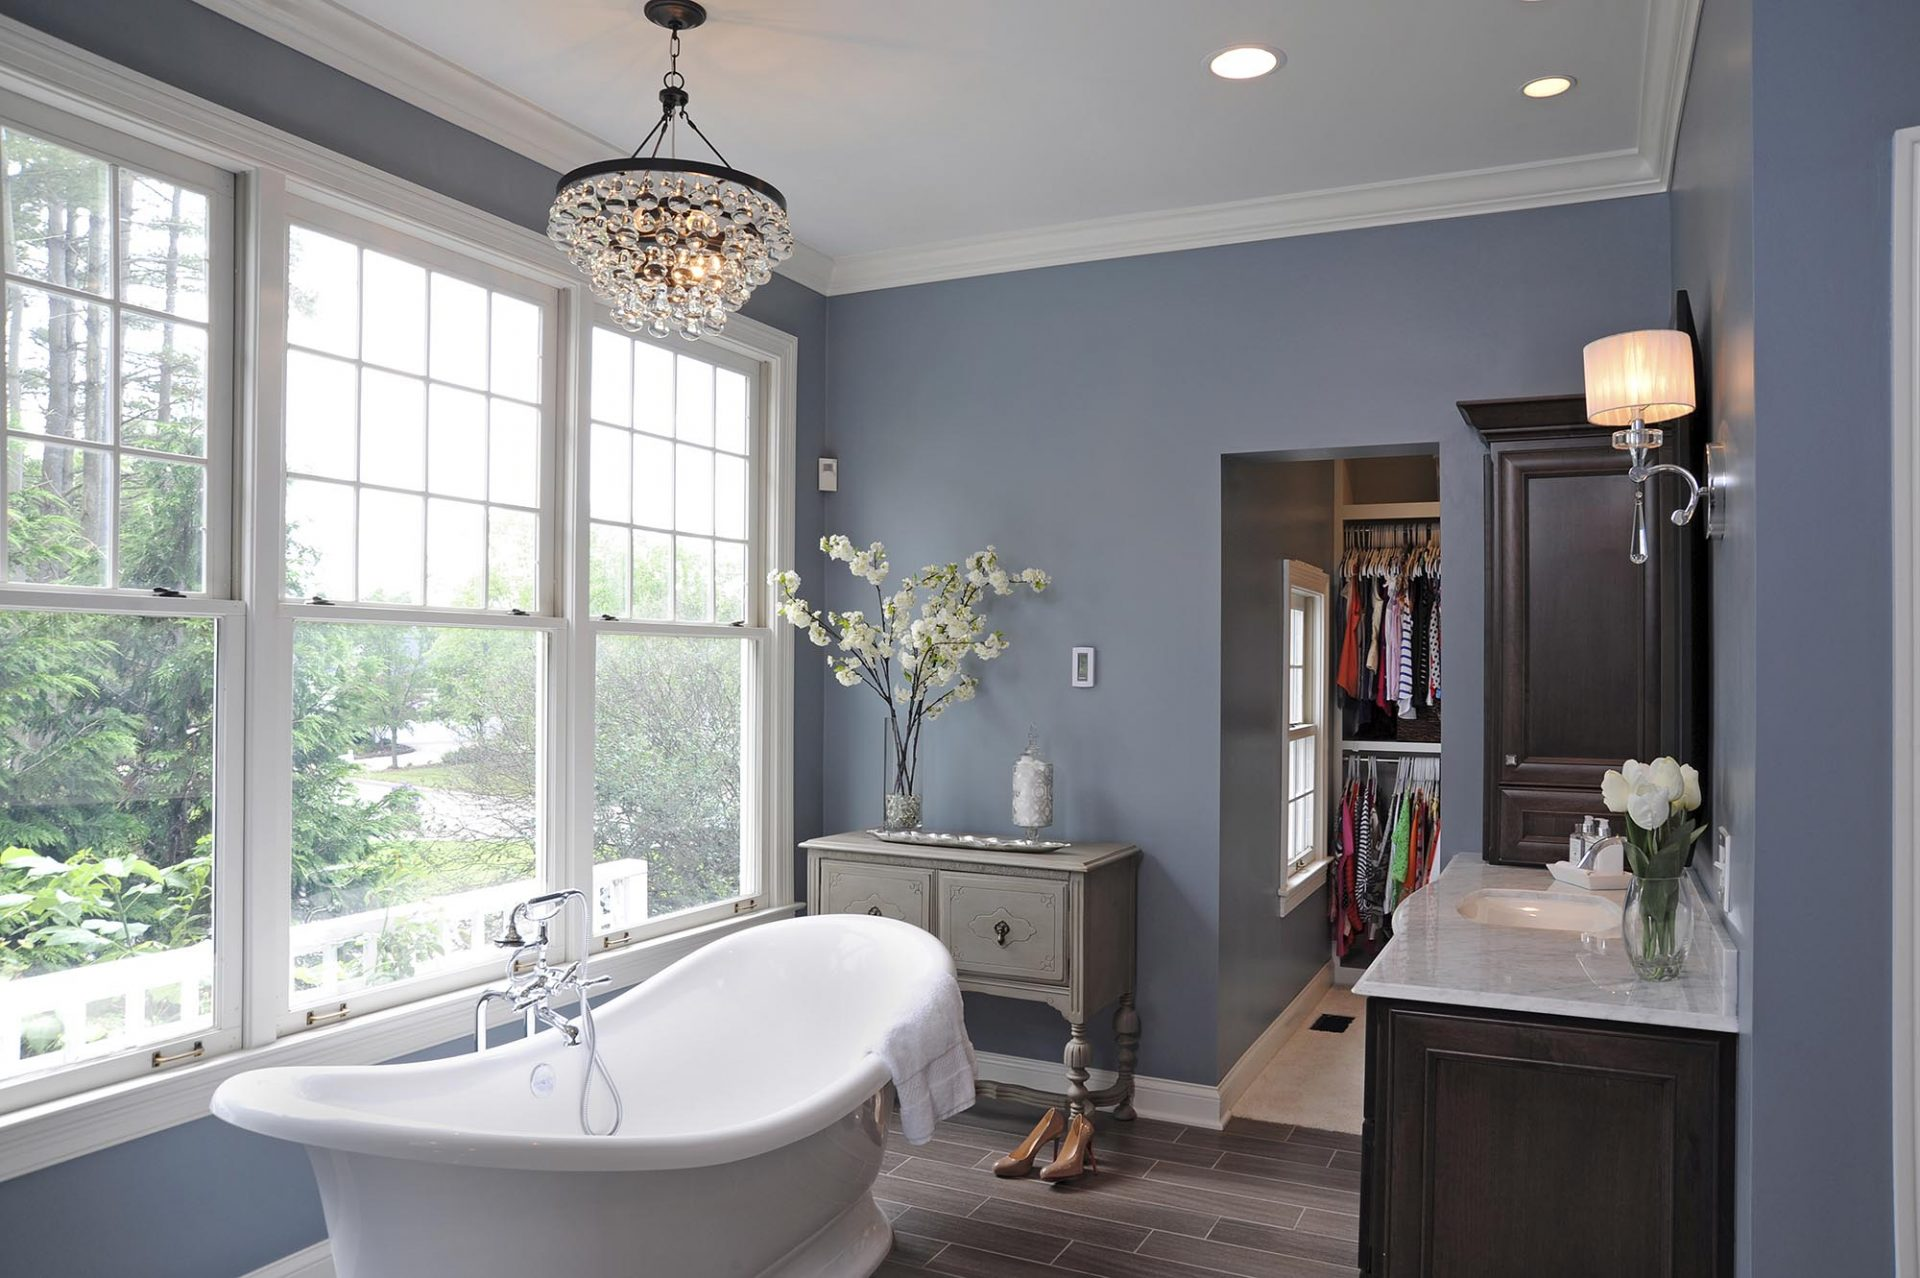 Master Bath, Westerville, Dave Fox, Remodel, freestanding tub, tub, trim, wood flooring, chandelier